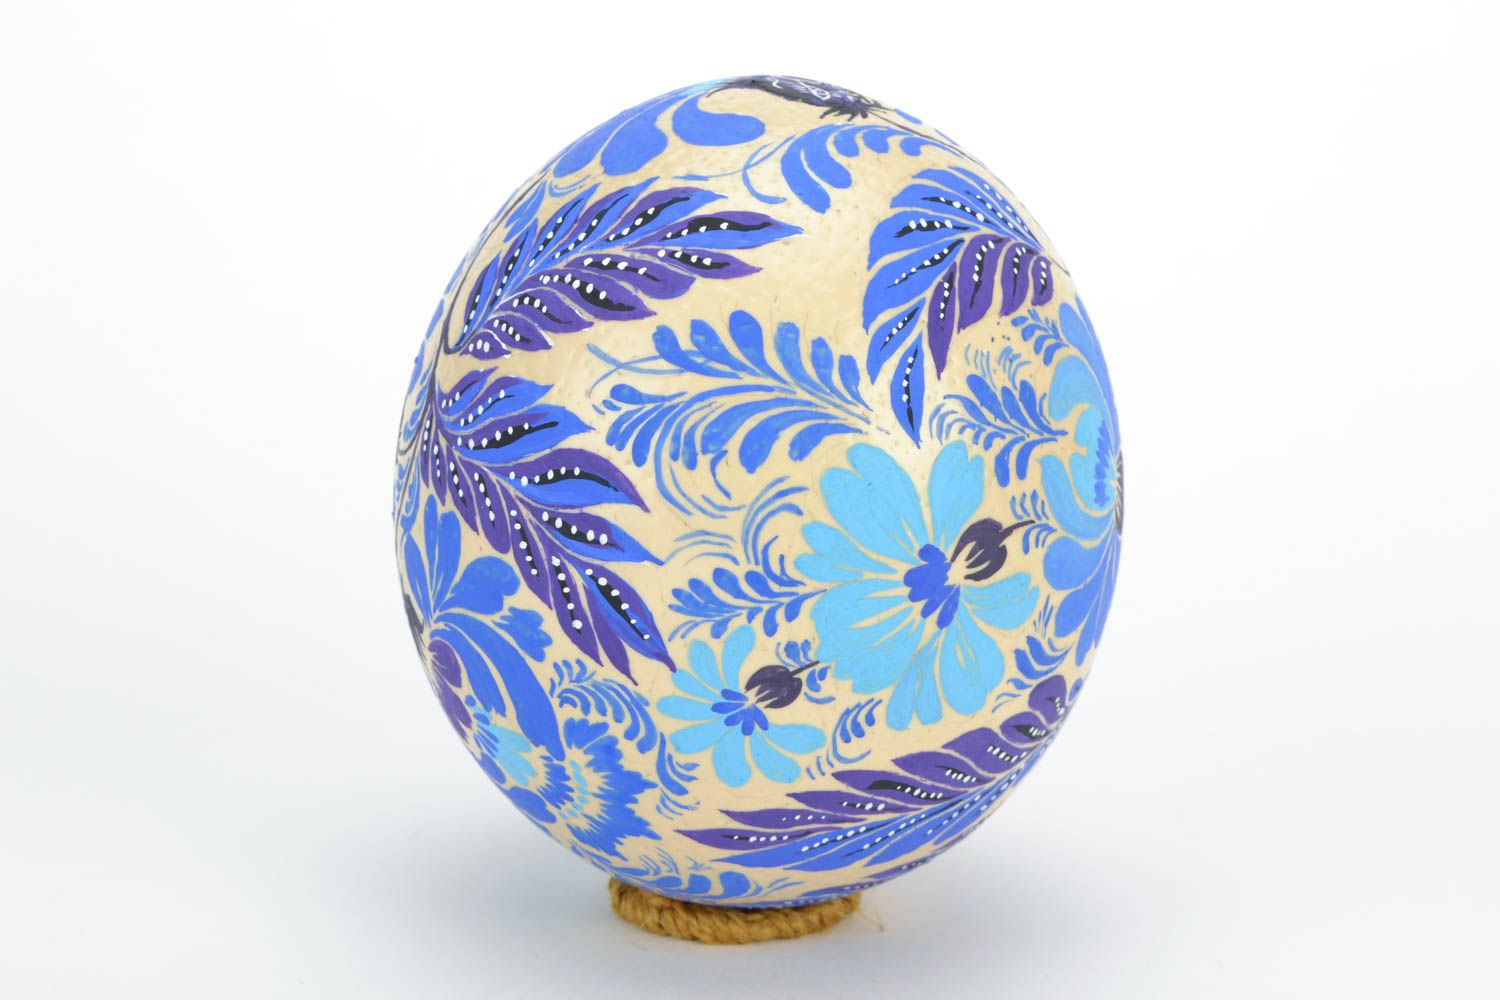 ostrich easter eggs Beautiful ostrich egg with folk blue Petrikov painting home Easter decor ideas - MADEheart.com